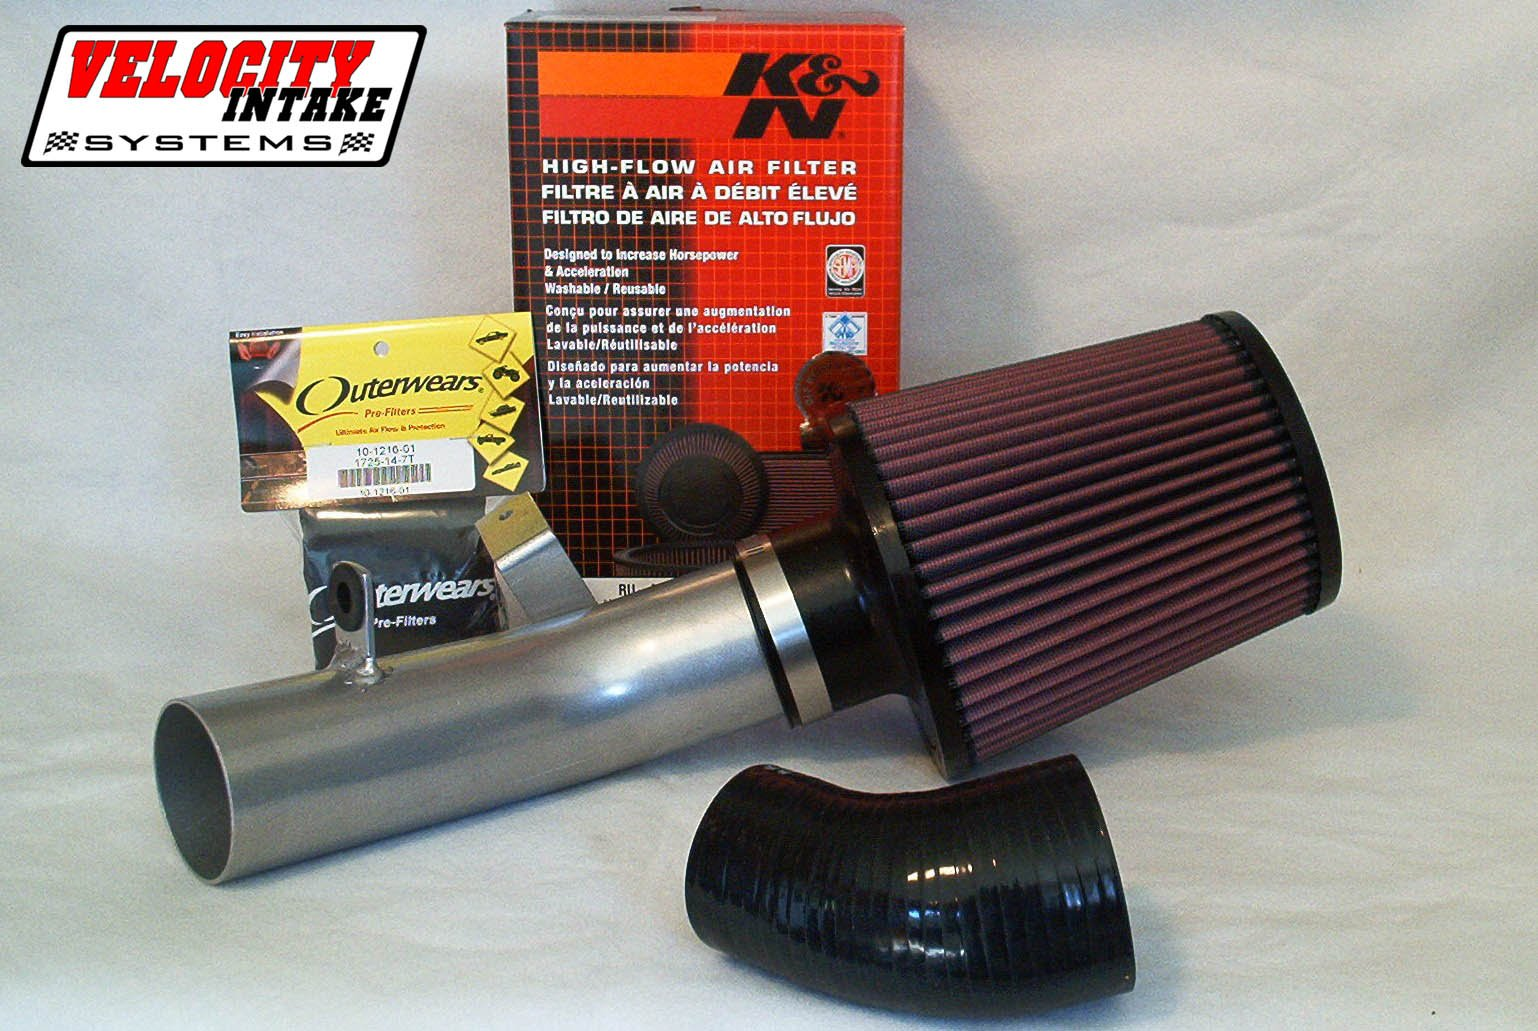 Malone Motorsports VelI-700r-1L Raptor 700 Velocity Intake System with Large K&N Filter by Velocity Intake Systems